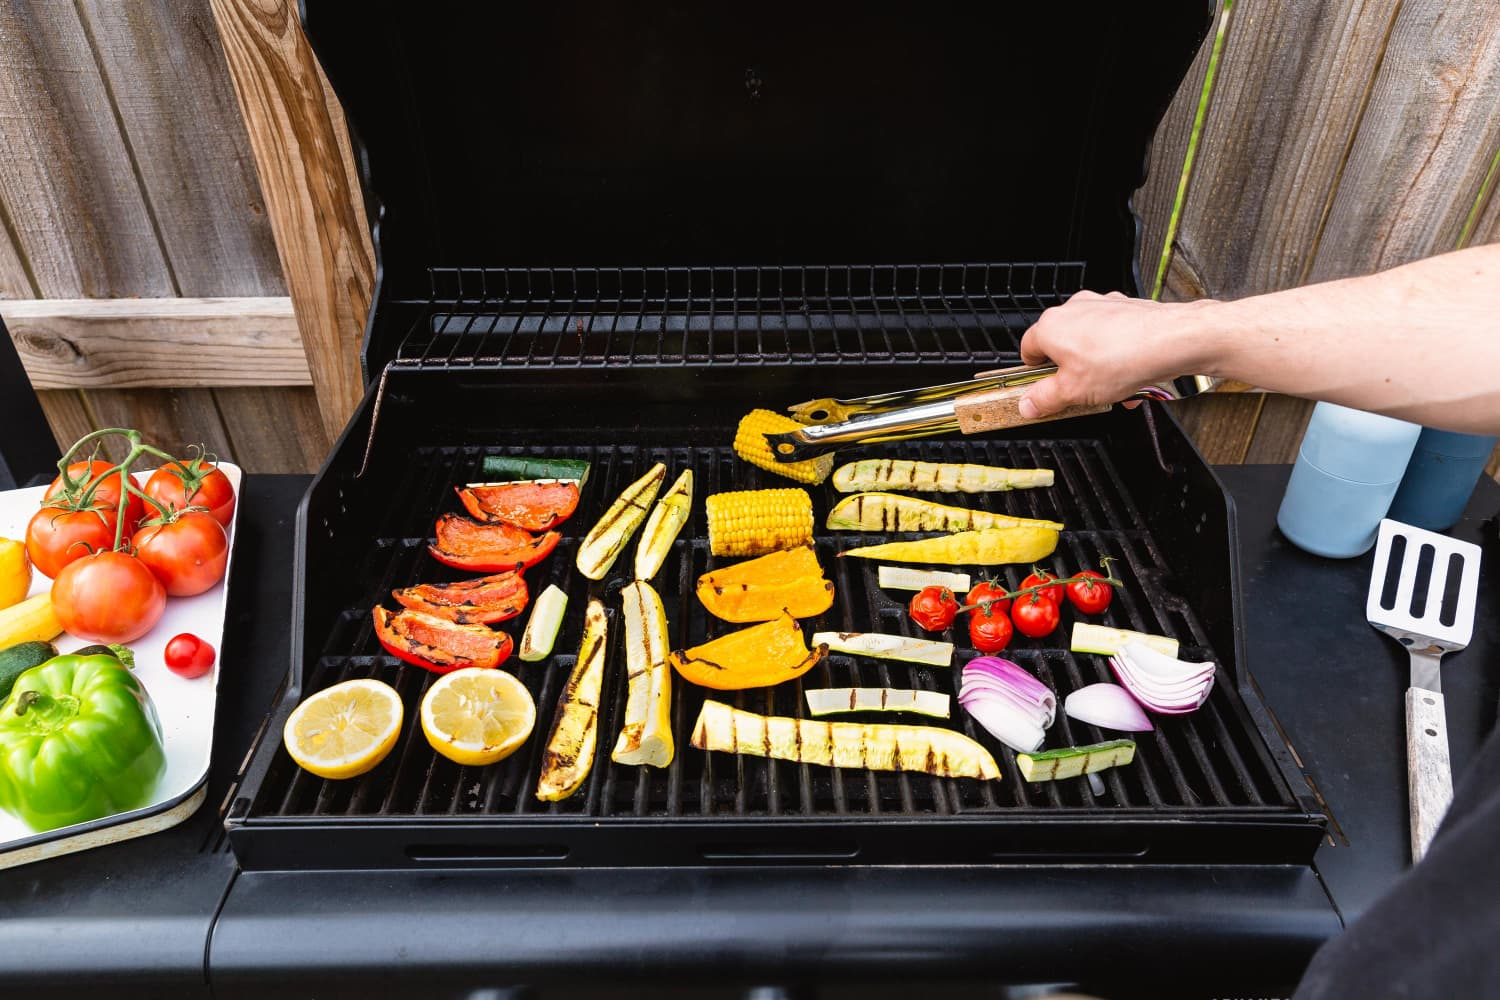 Here's How To Get Your Gas Grill Ready for the Season